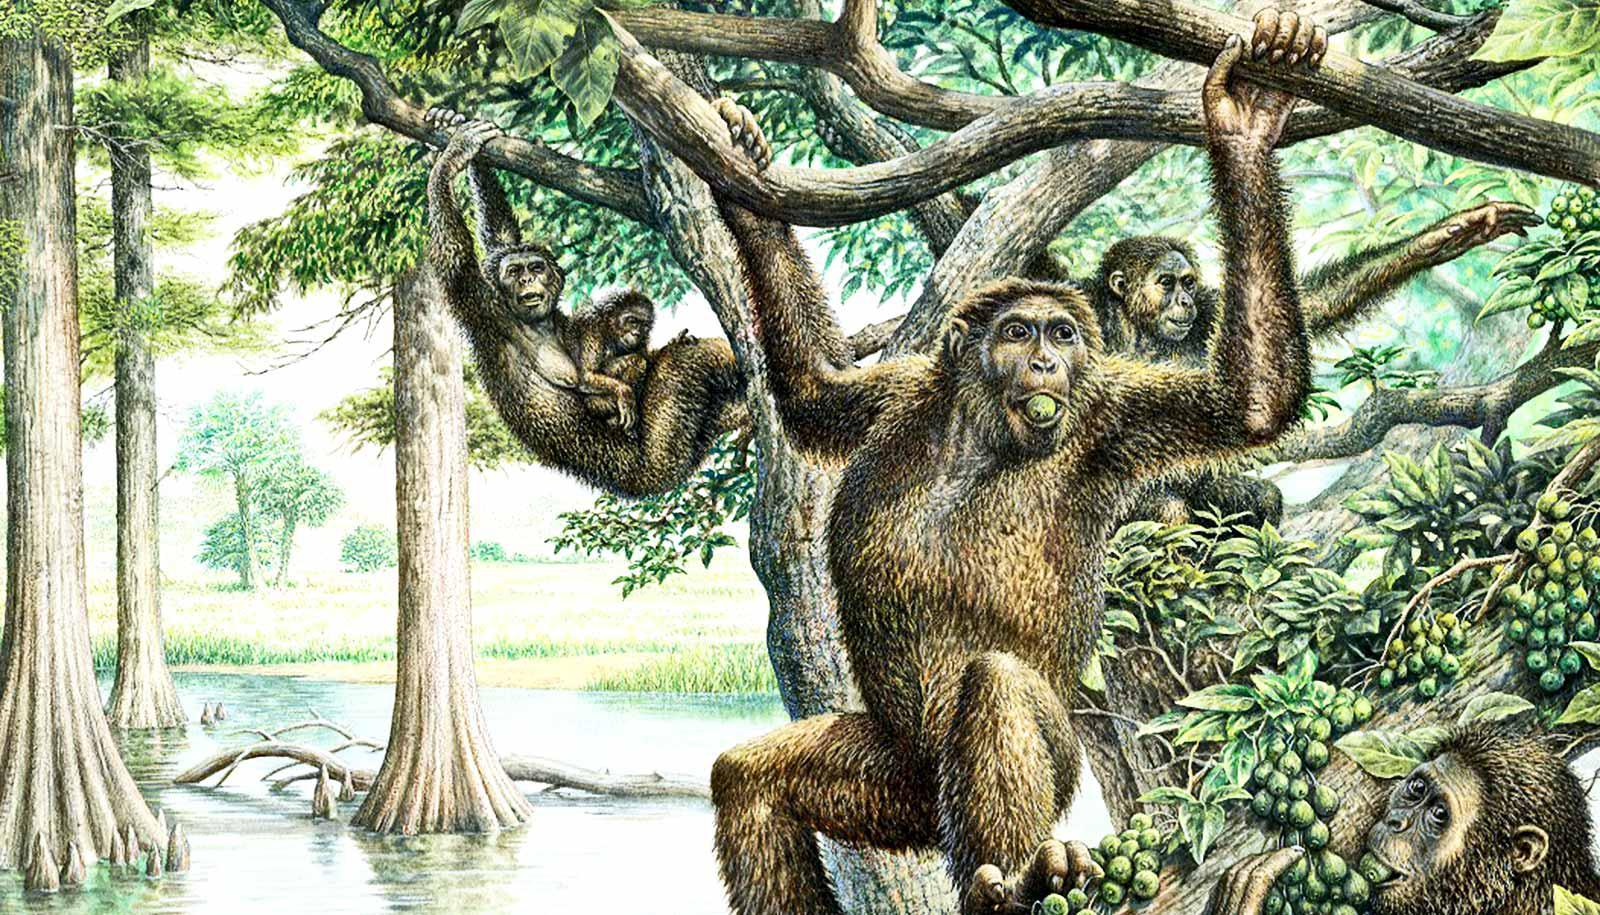 A group of Rudapithecus, which look like apes, swing through the trees and eat fruit